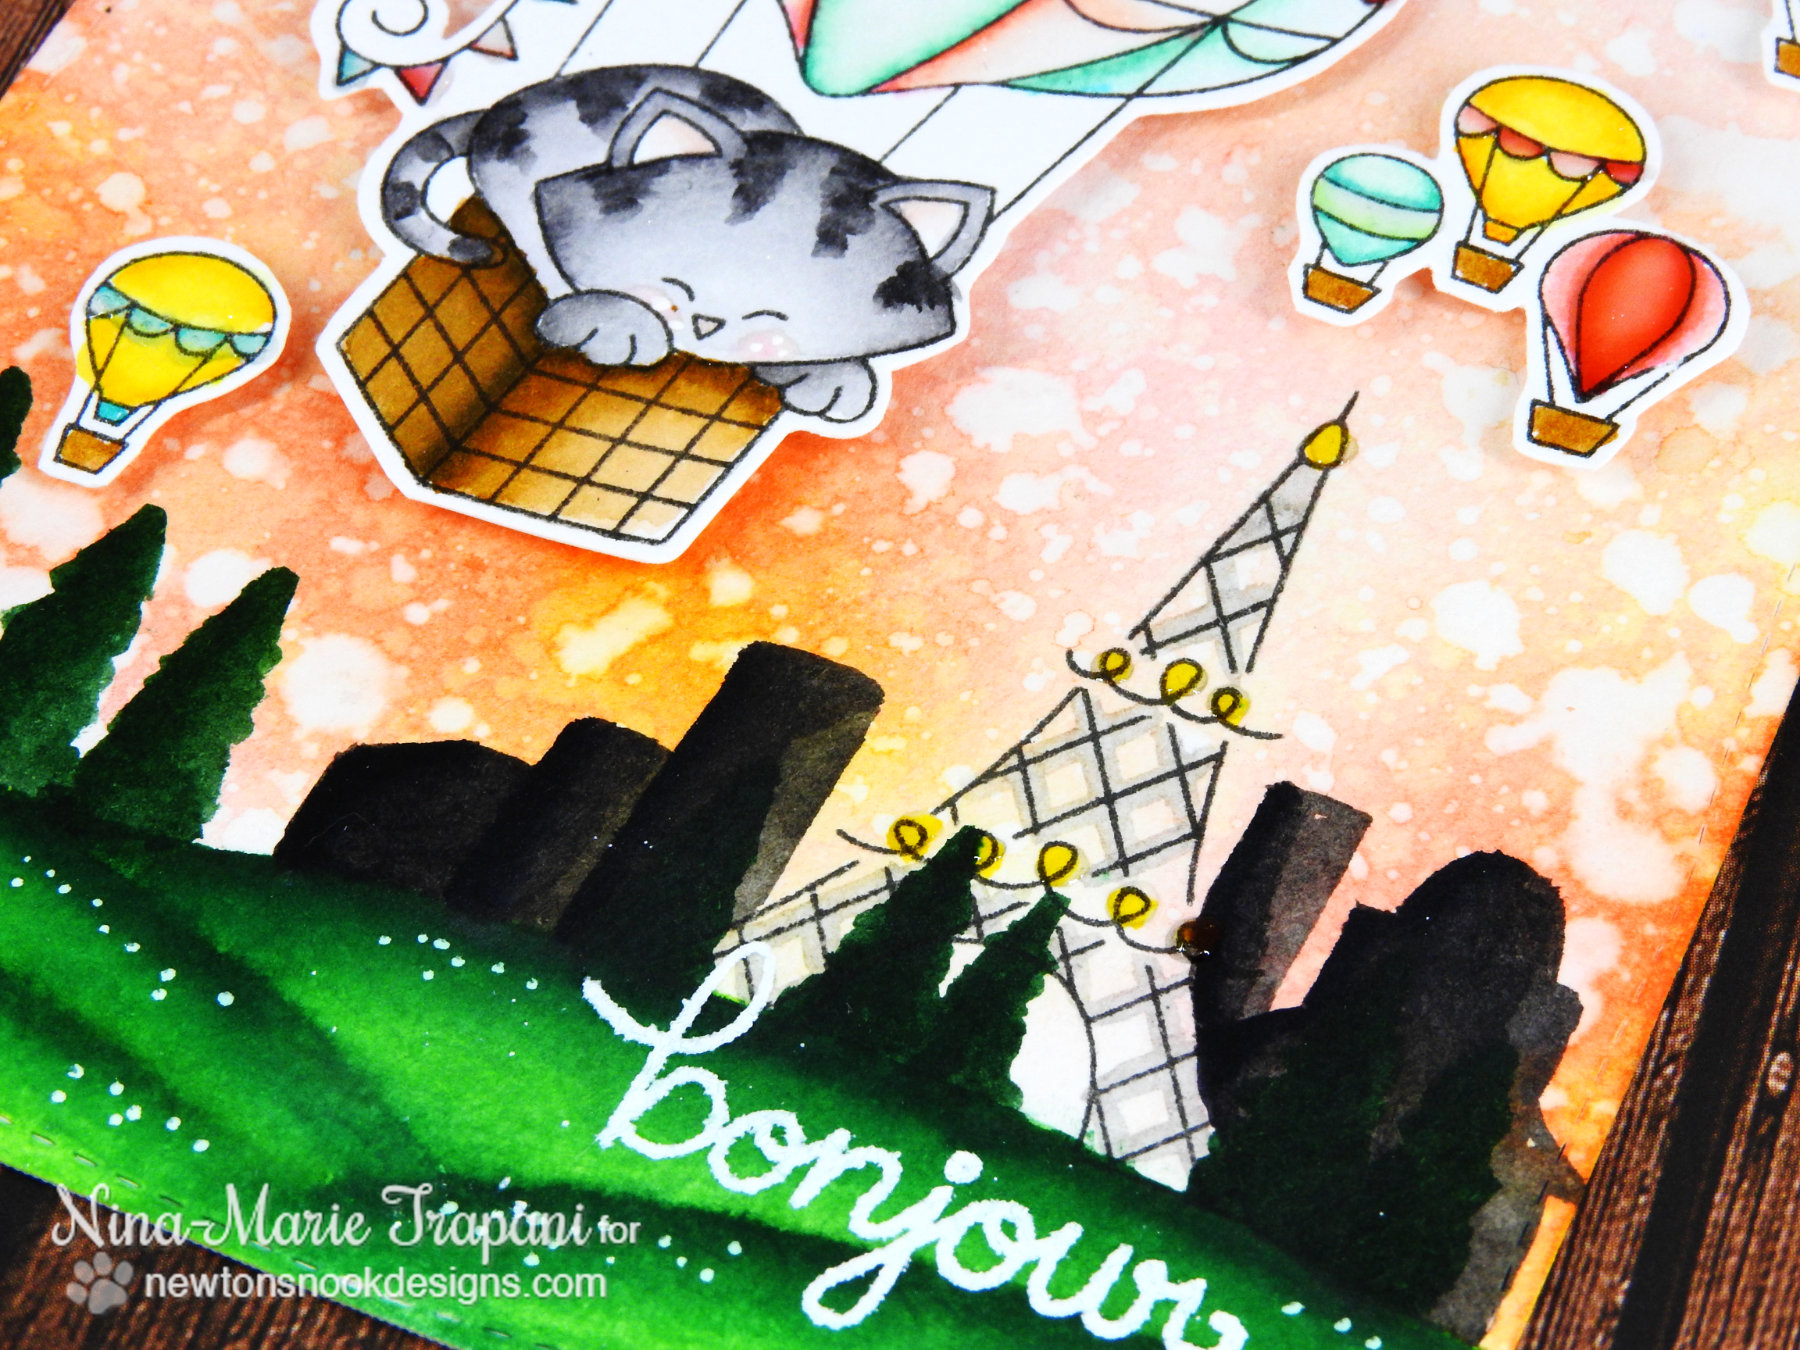 Sunset Cityscape with Zigs + Distress Inks_3